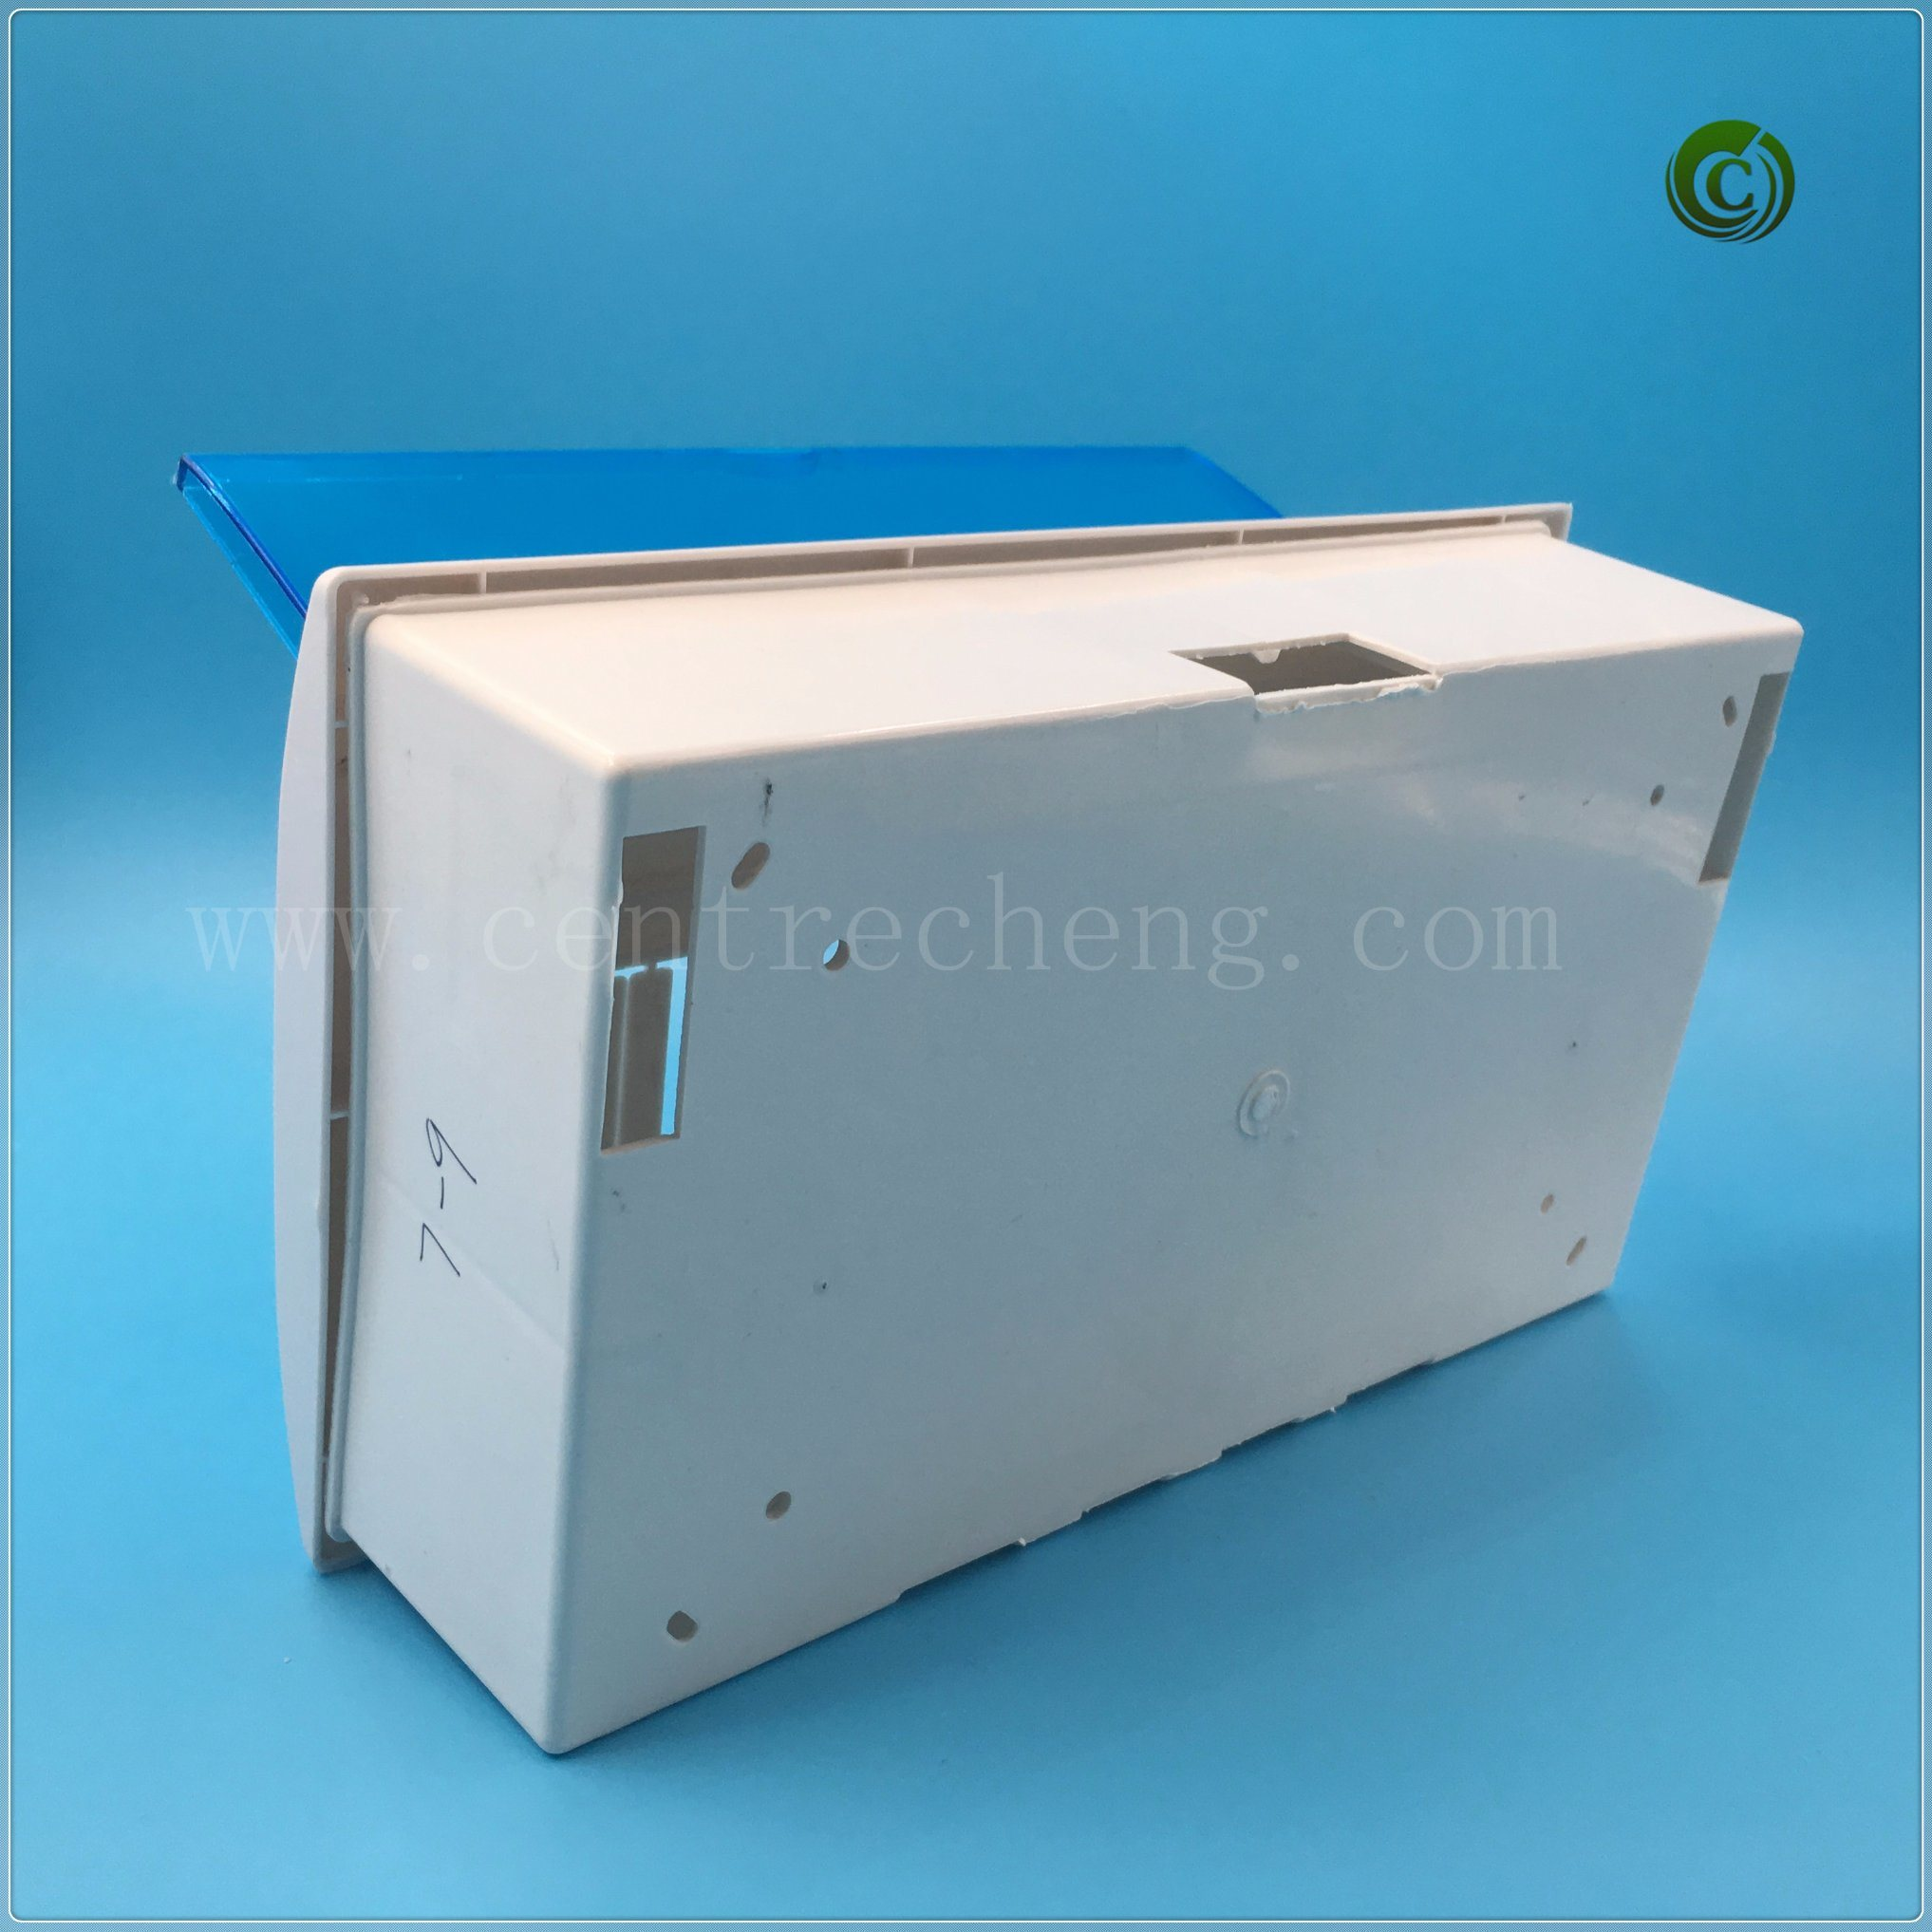 China 8-12ways Switch/Control Boxes Household Distribution Box ...